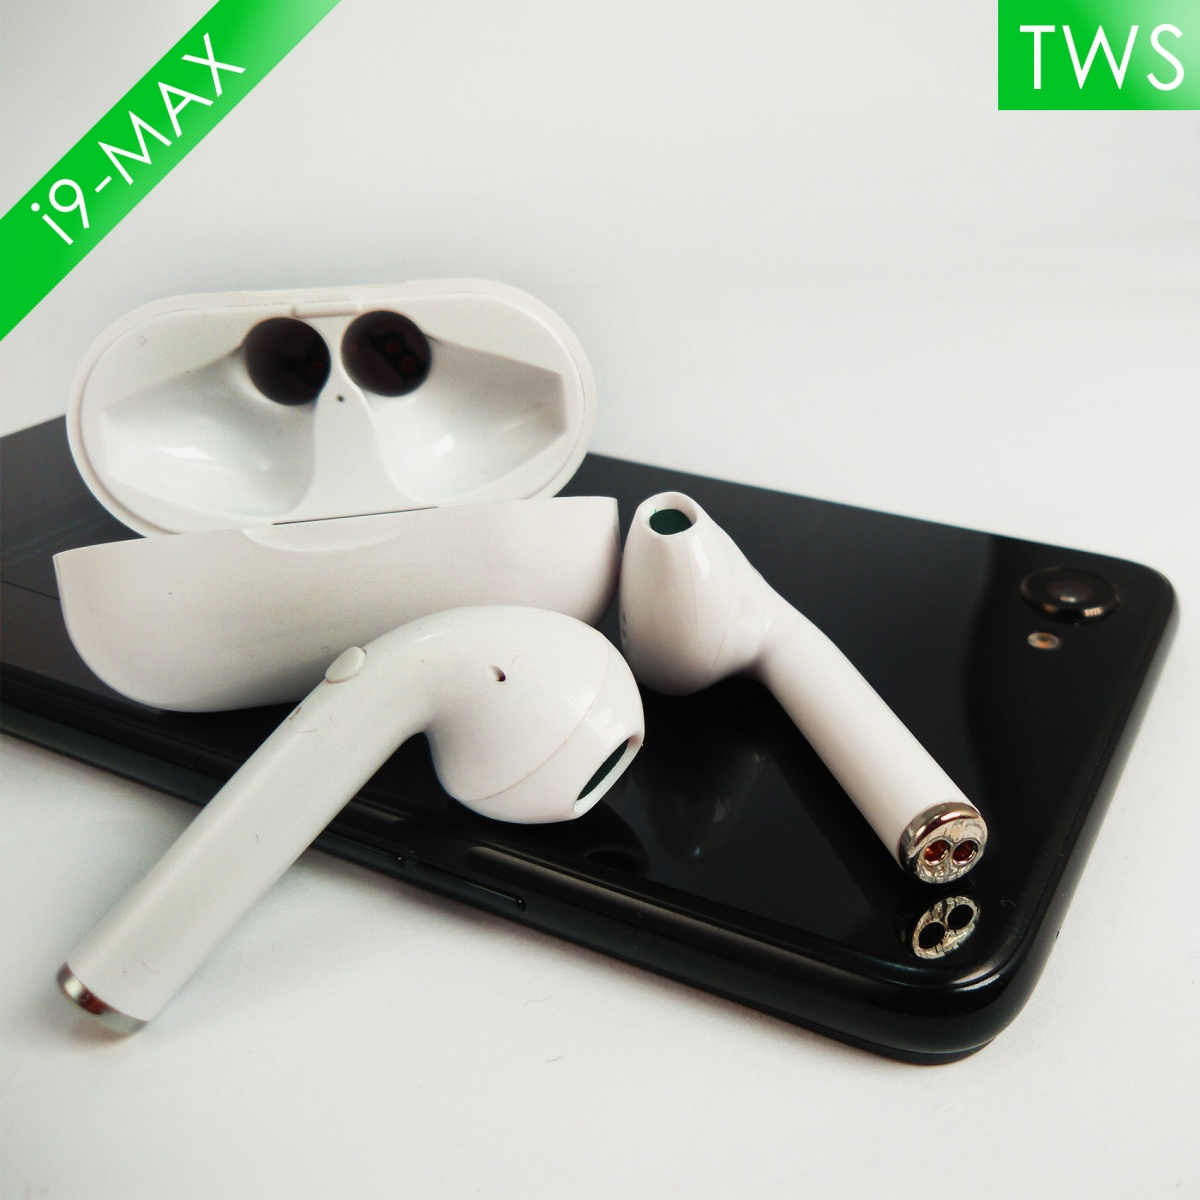 i9-Max TWS Wireless Earphone - White